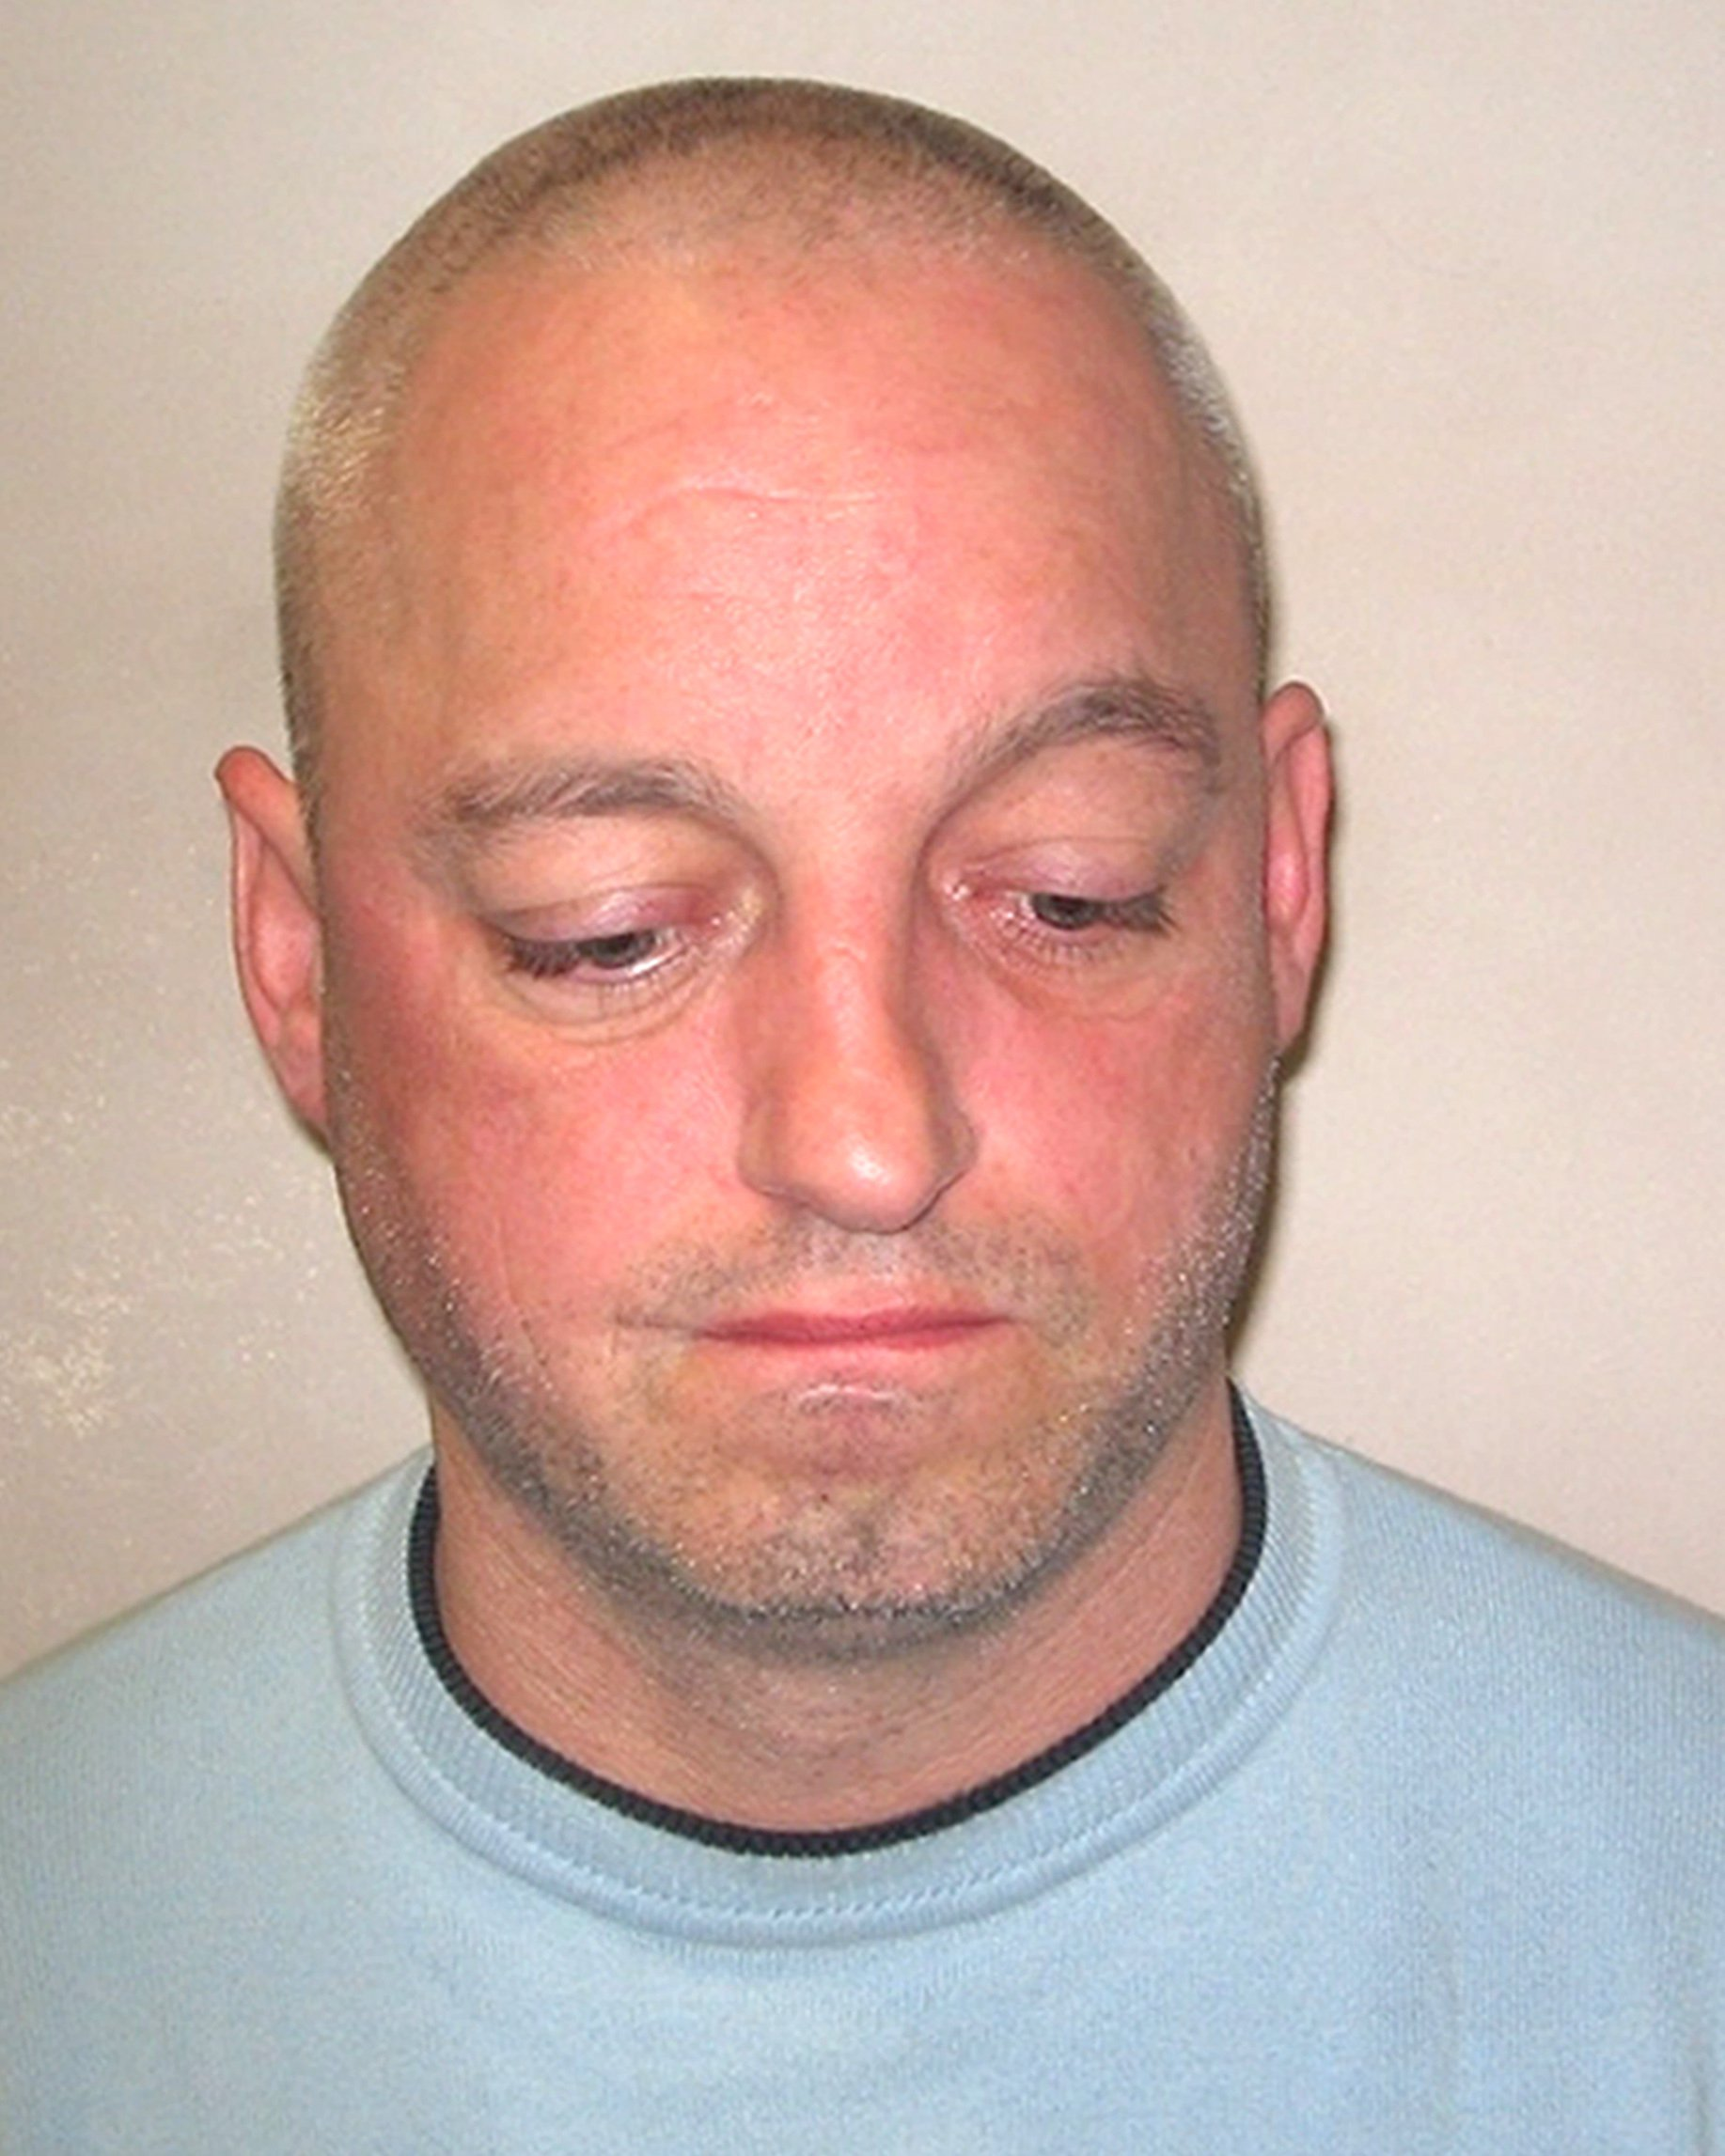 Undated handout photo issued by the Metropolitan Police of Jason Keogh, who disguised himself with a pair of pants in an armed cash-in-transit robbery, has been jailed for seven years and two months at the Old Bailey. PRESS ASSOCIATION Photo. Issue date: Wednesday May 16, 2018. See PA story POLICE Pants. Photo credit should read: Metropolitan Police/PA Wire NOTE TO EDITORS: This handout photo may only be used in for editorial reporting purposes for the contemporaneous illustration of events, things or the people in the image or facts mentioned in the caption. Reuse of the picture may require further permission from the copyright holder.